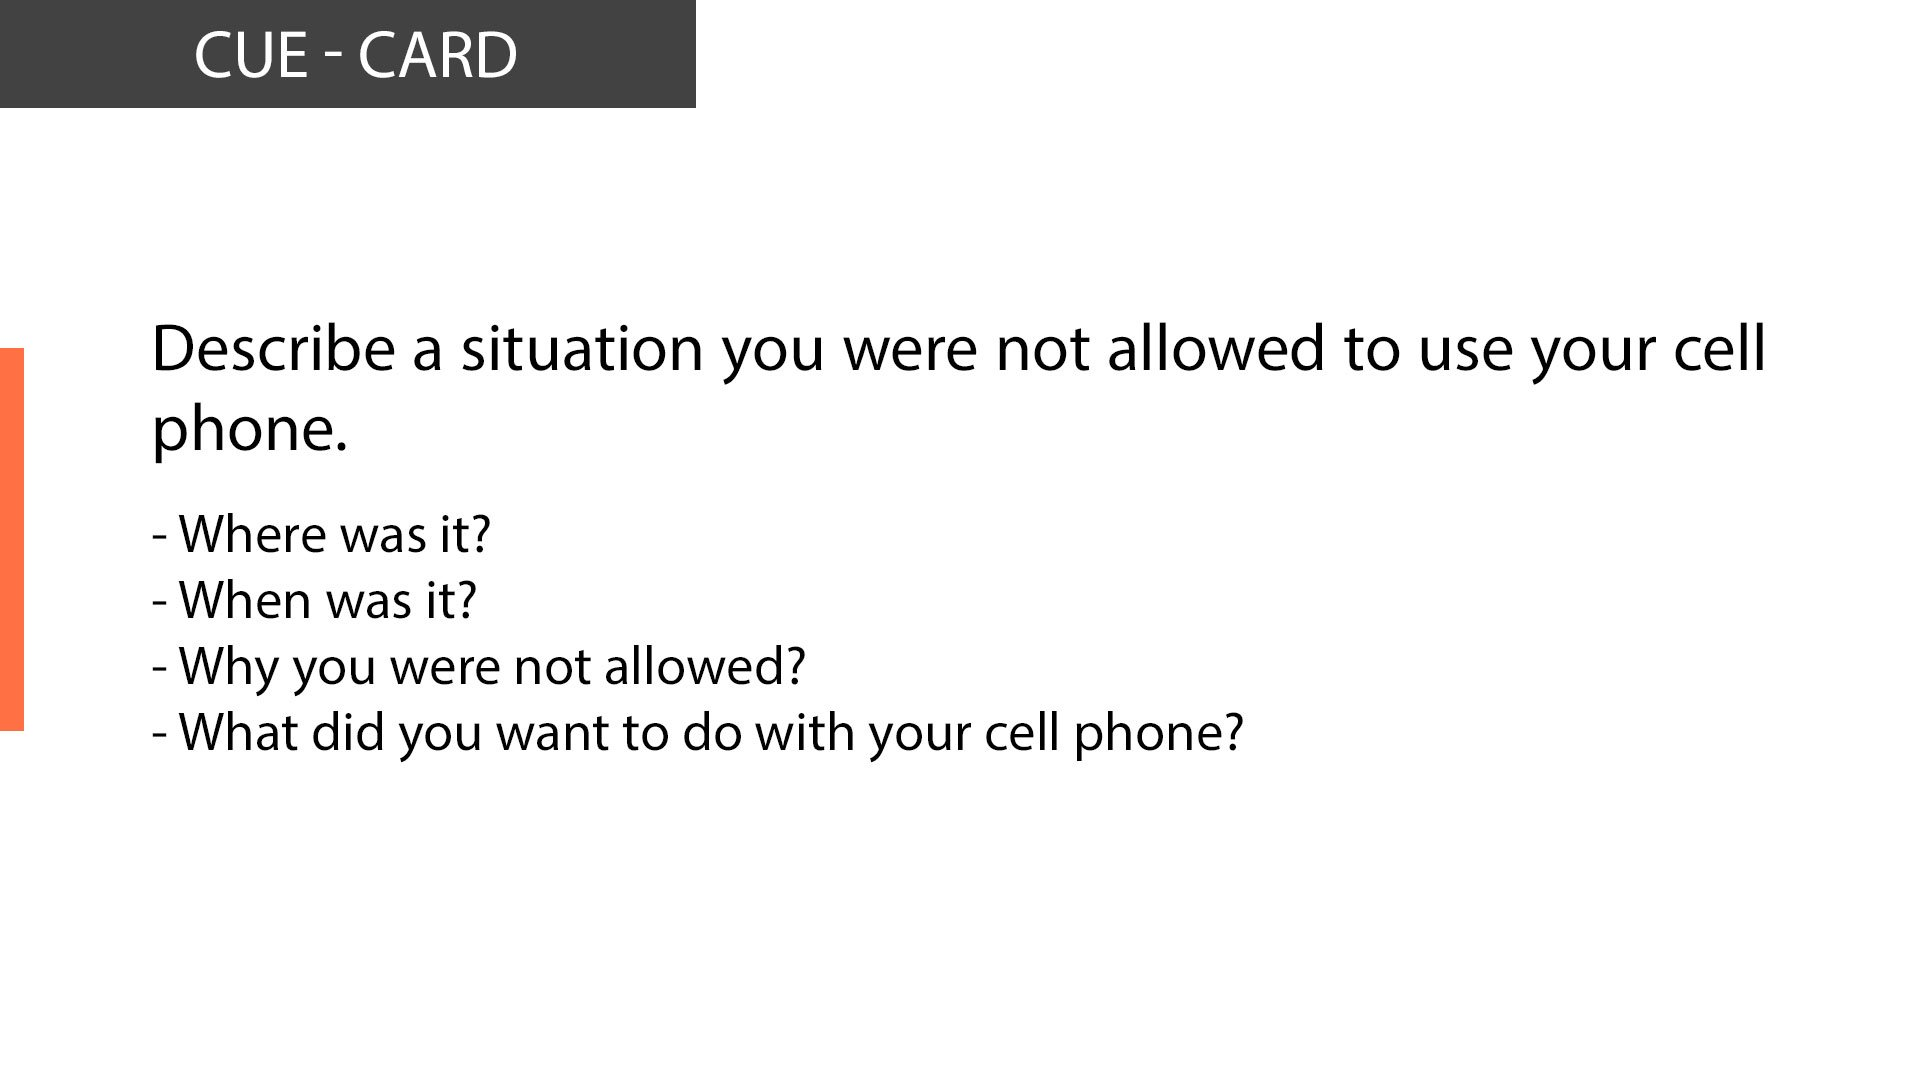 IELTS Speaking Describe a situation you were not allowed to use your cell phone